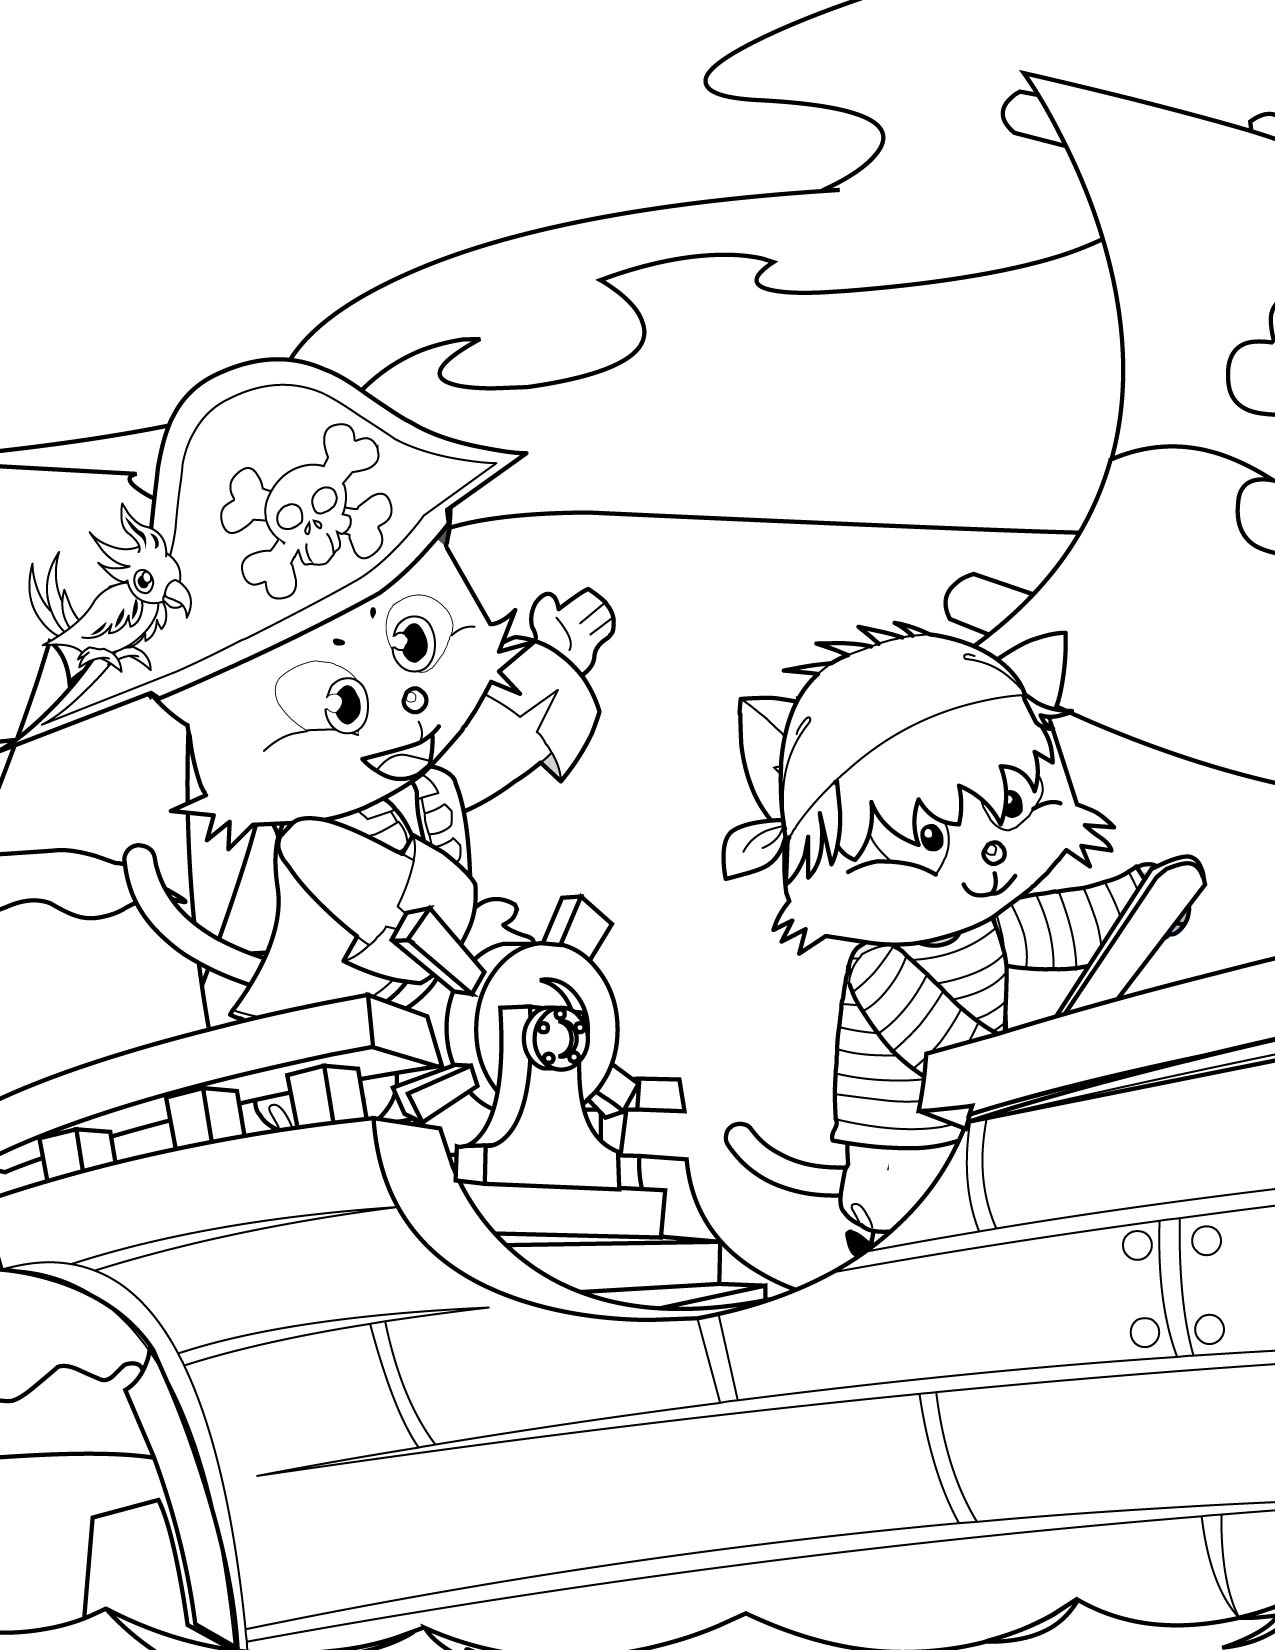 Pirate coloring pages to download and print for free for Coloring pages of pirates